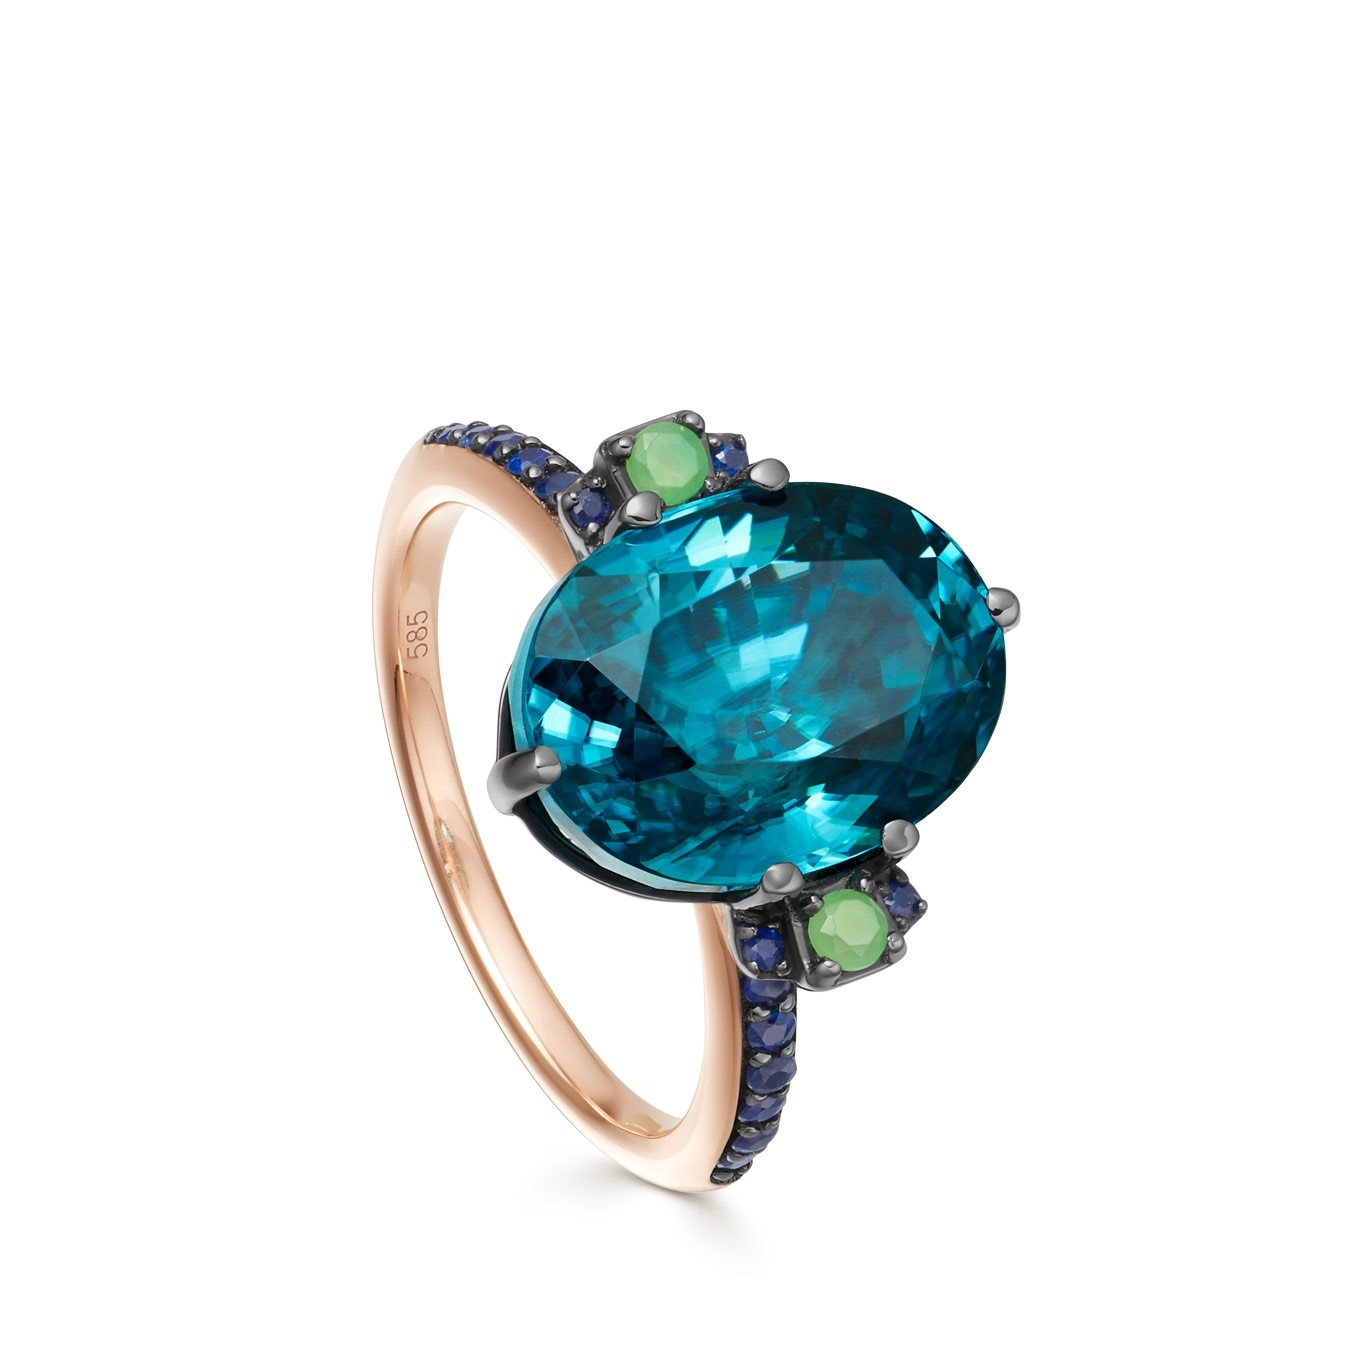 Astley Clarke Zircon Ring - British luxury jewellery - UK style blog